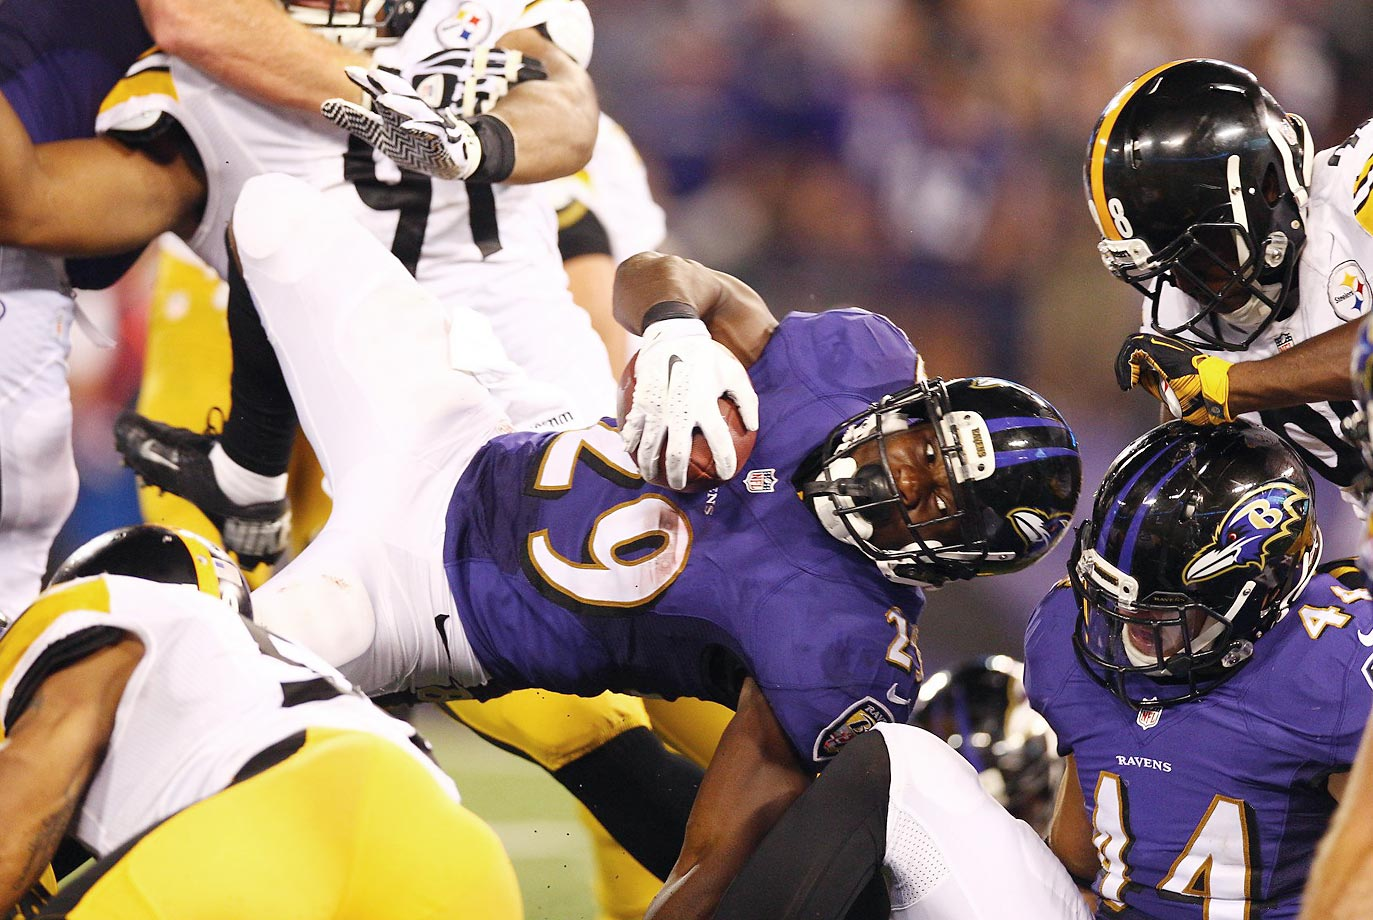 Ravens running back Justin Forsett attempts to drive in for a touchdown against the Steelers.